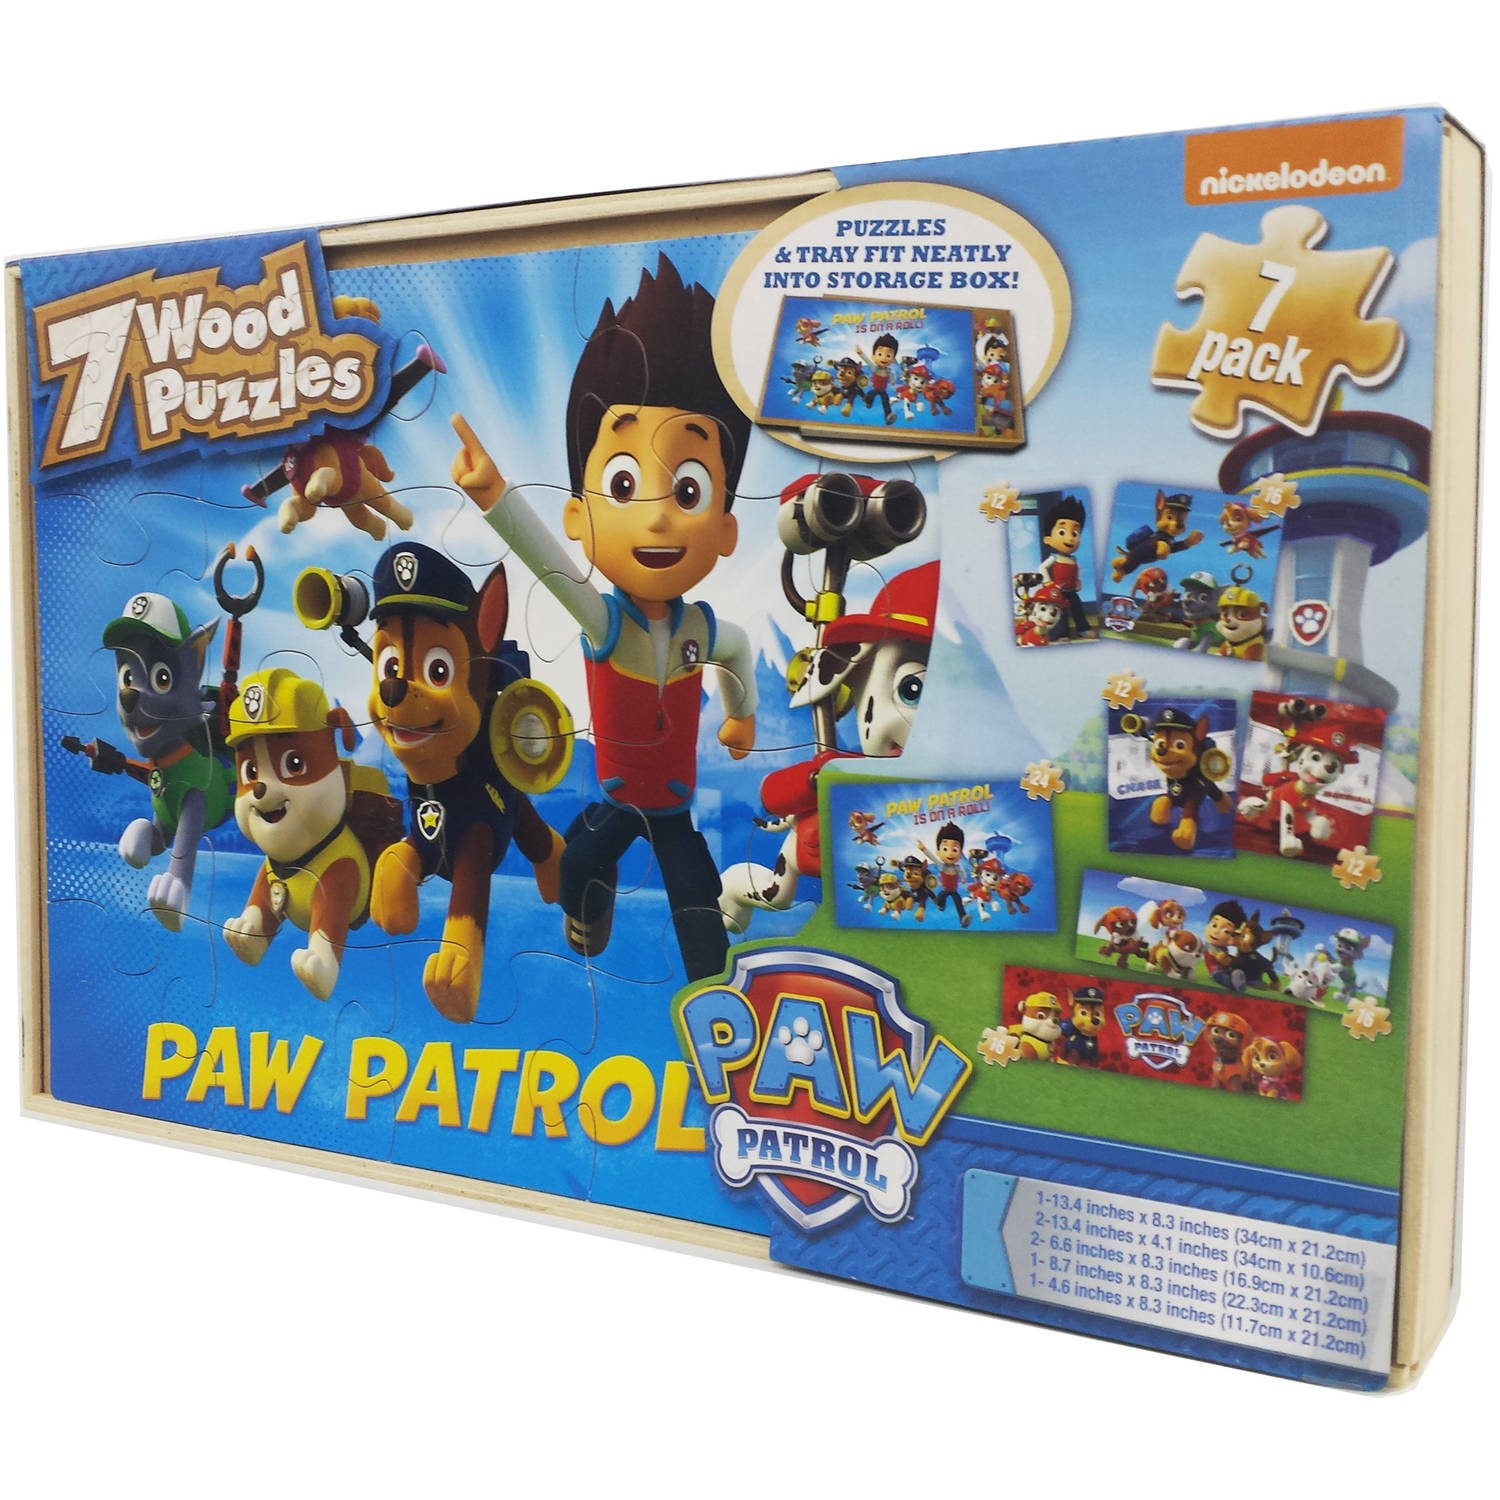 Nickelodeon Paw Patrol 7 Wood Jigsaw Puzzles in Wood Storage Box by CARDINAL INDUSTRIES, INC